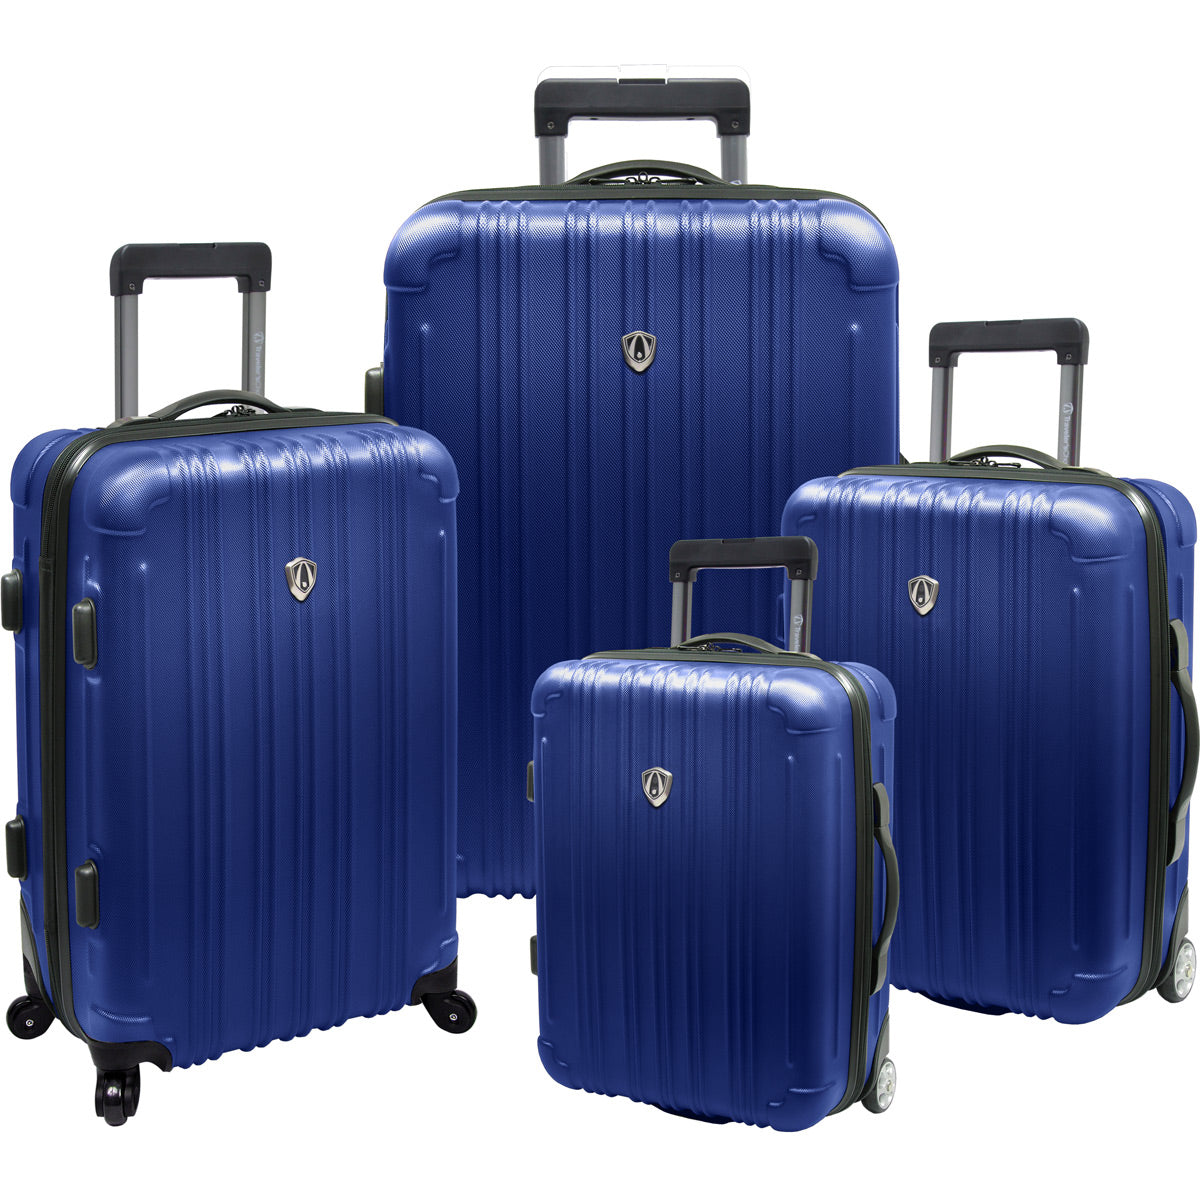 Traveler's Choice New Luxembourg 4 Piece Hardside Expandable Spinner Luggage Set